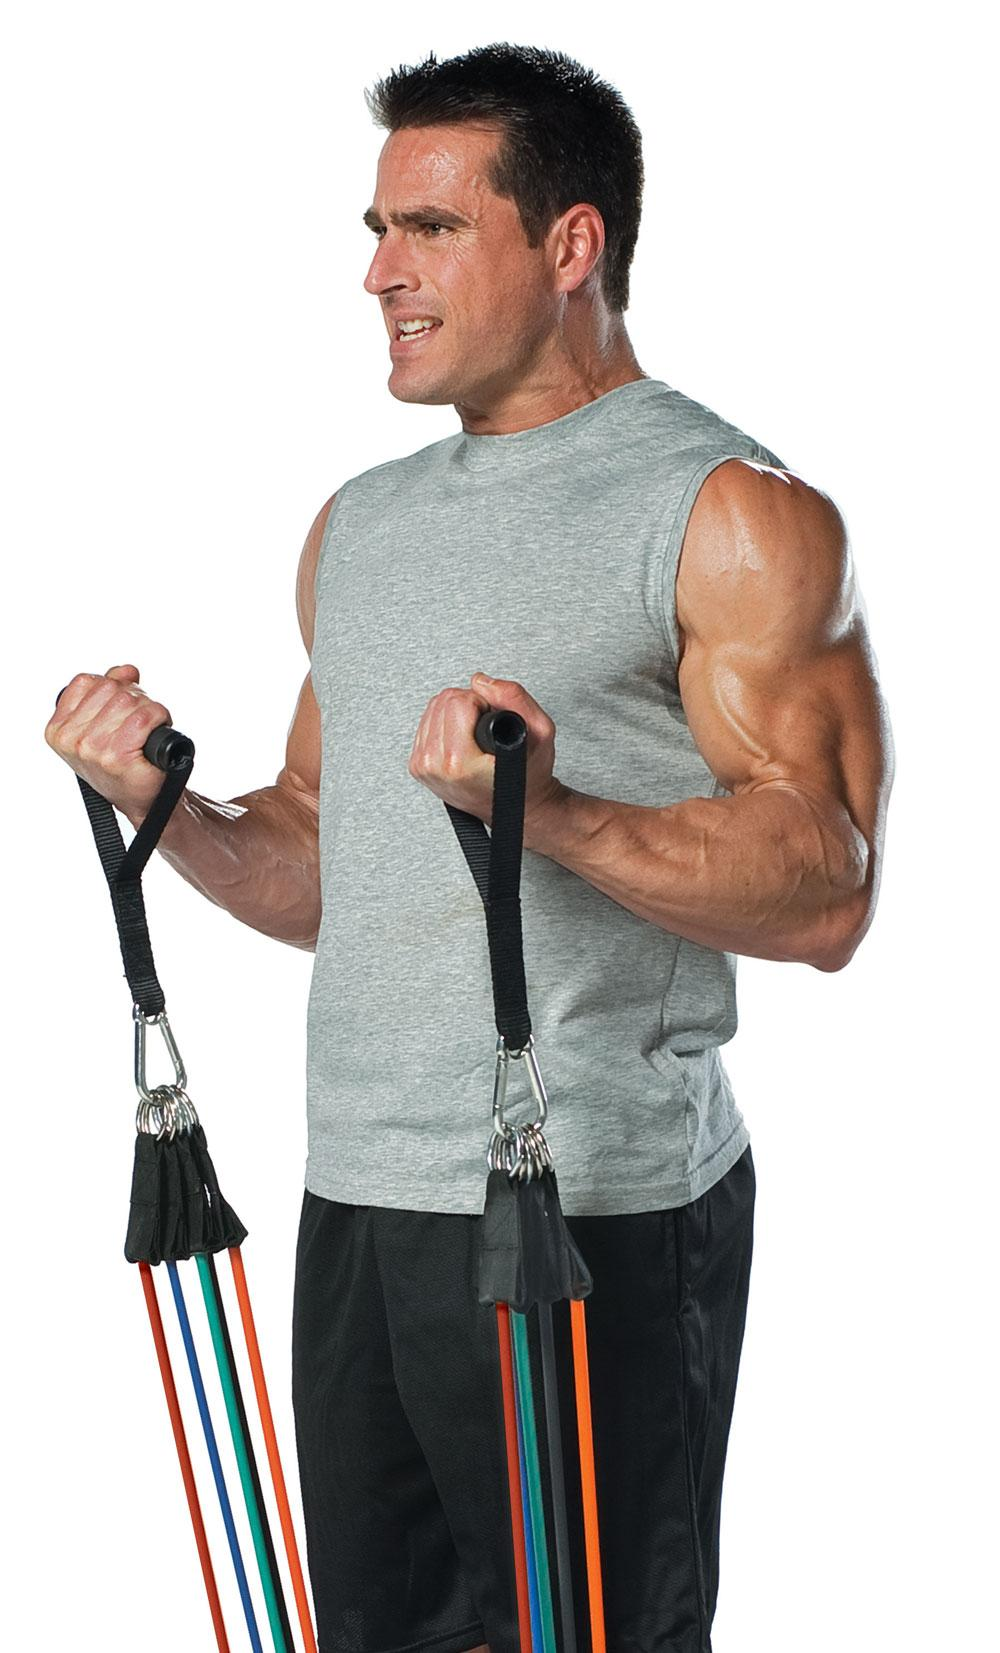 Don't buy resistance bands before reading these tiucalttoppey.gqe Prices· Updated July · View Top 5 List· In-Depth AnalysisCategories: Appliances, Automotive, Baby & Kids, Beauty & Personal Care and more.